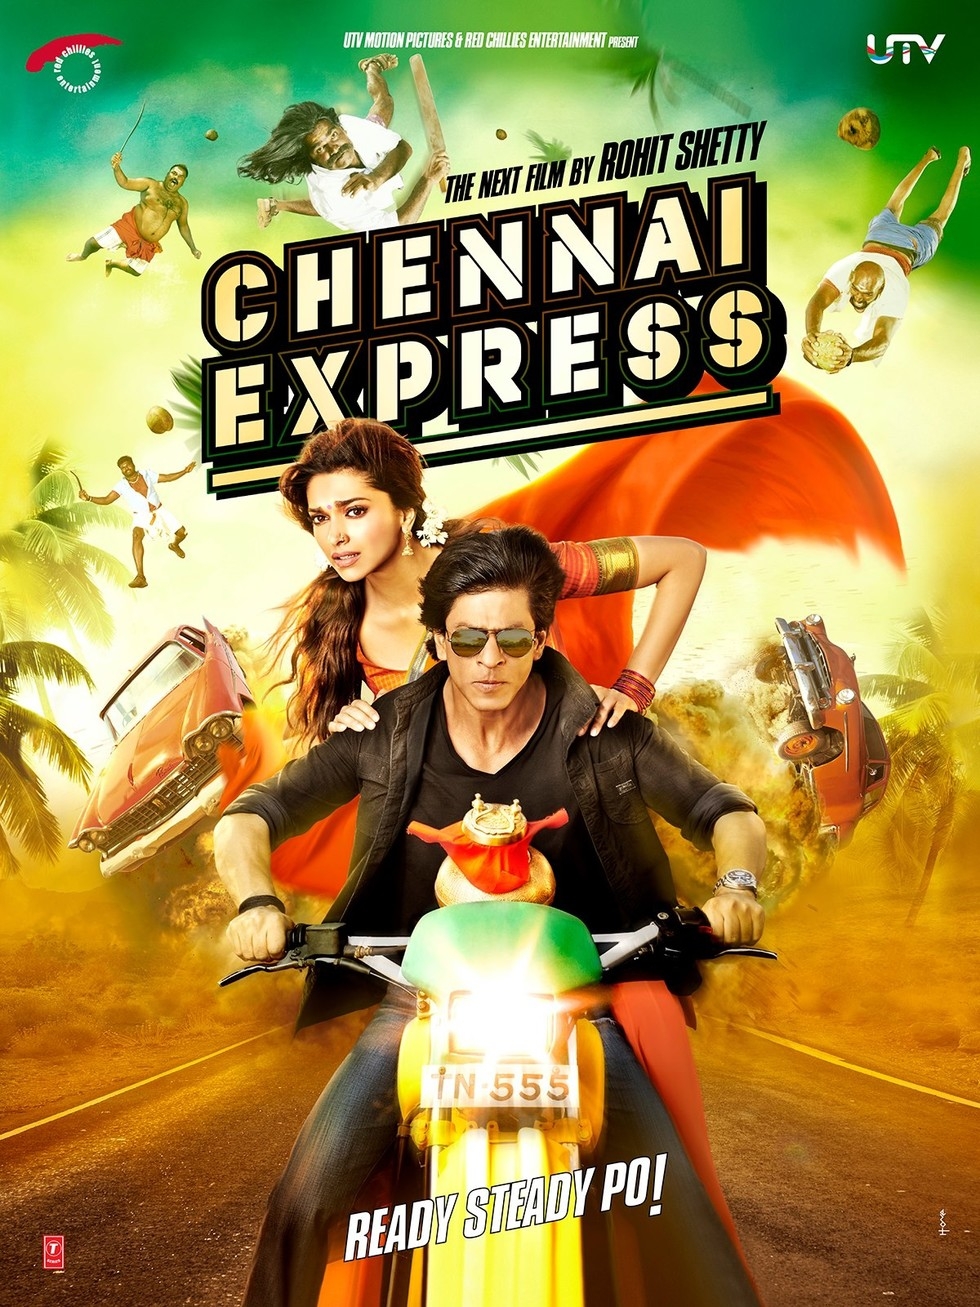 Chennai Express - Movie Poster #1 (Large)